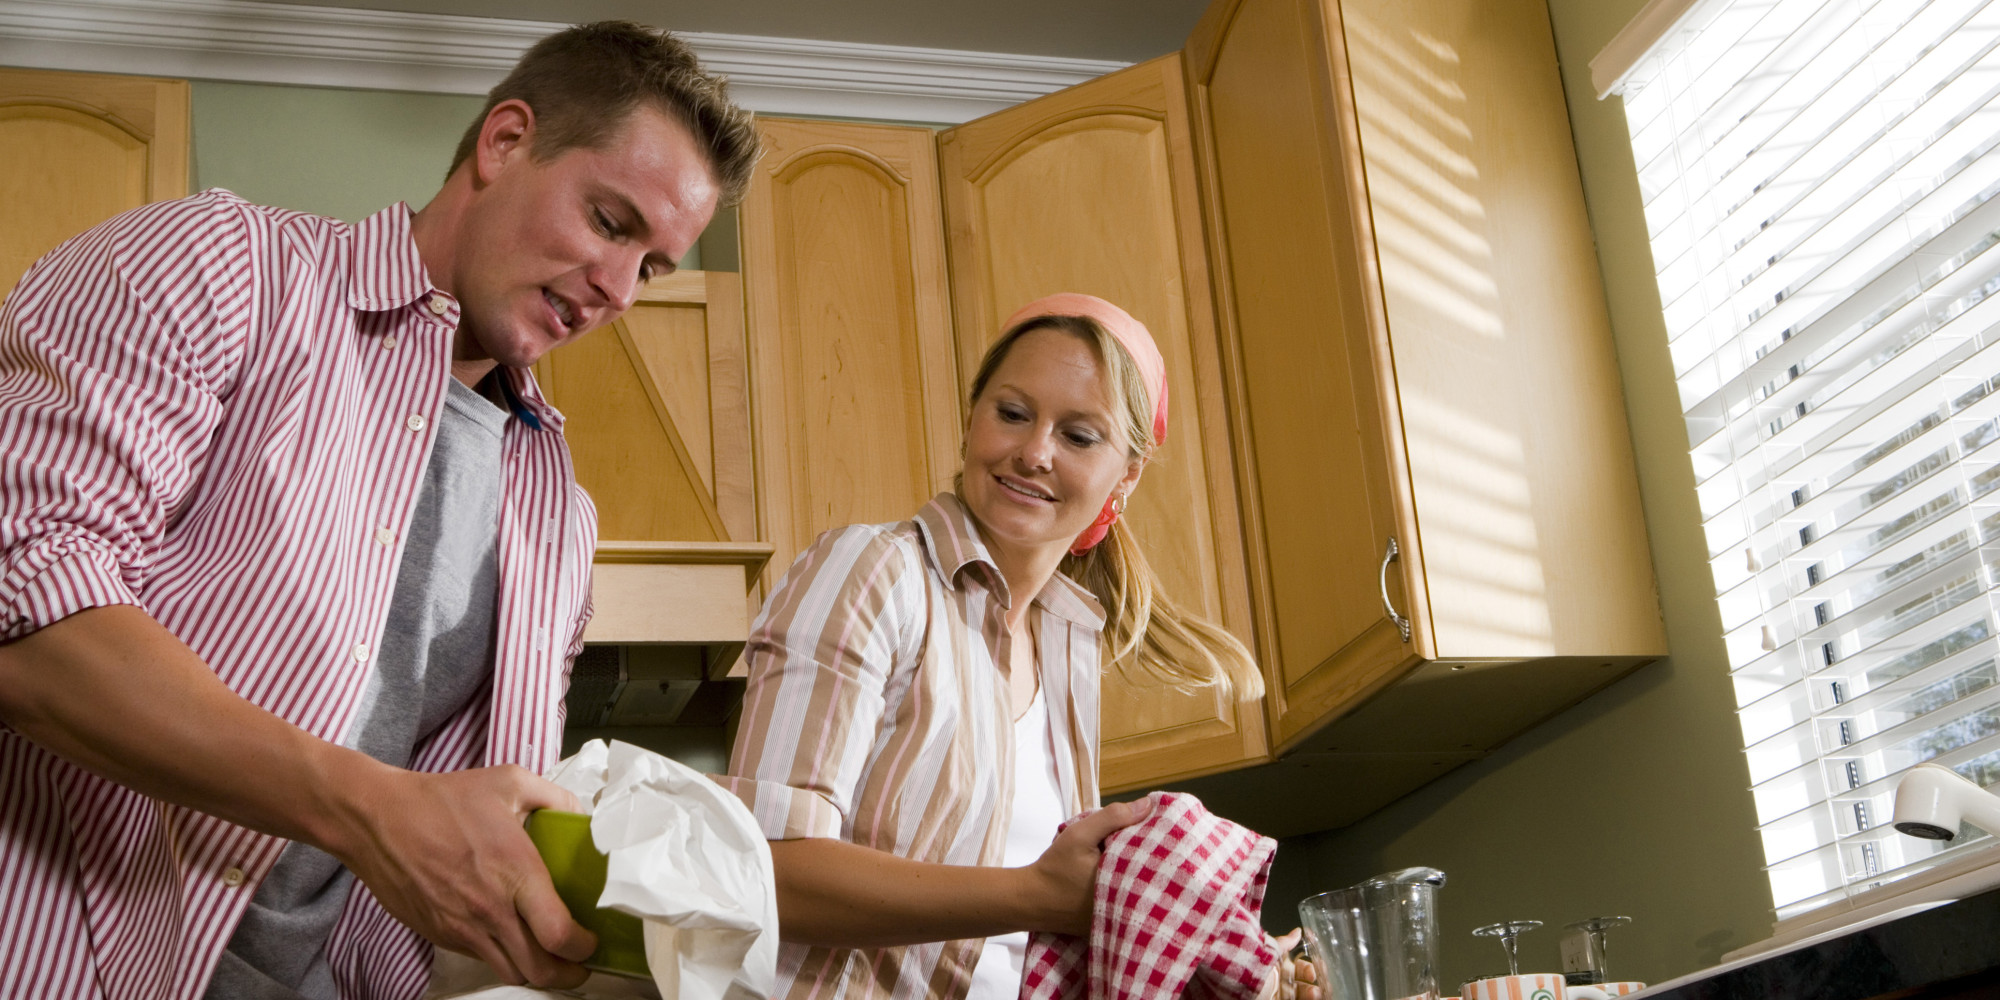 how to help with spouse who is untidy